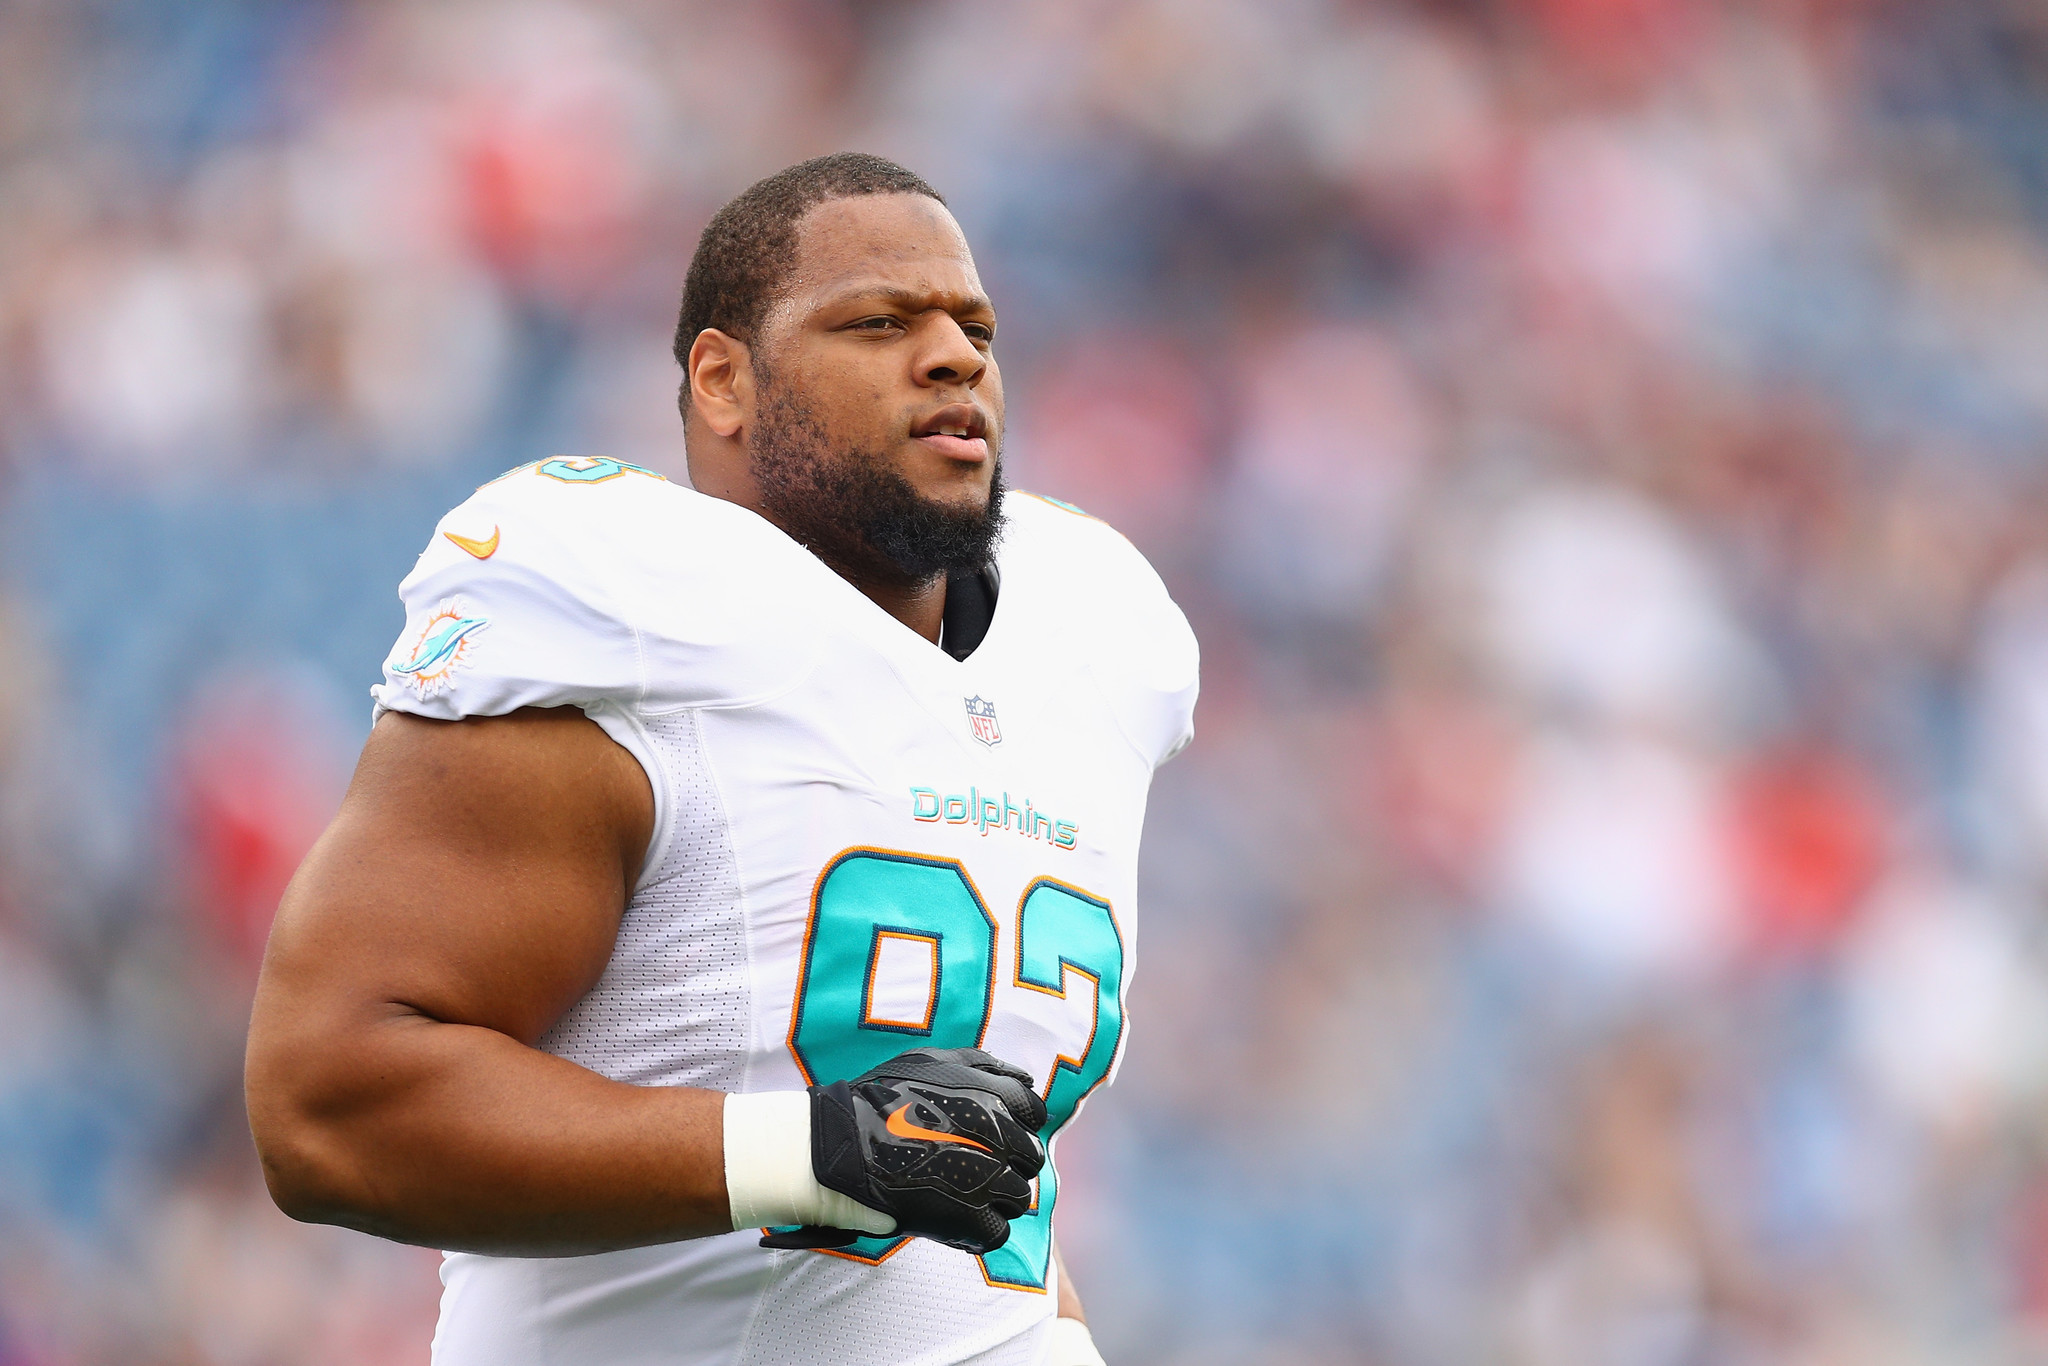 Sfl-report-steelers-file-official-report-with-nfl-about-ndamukong-suh-20161020